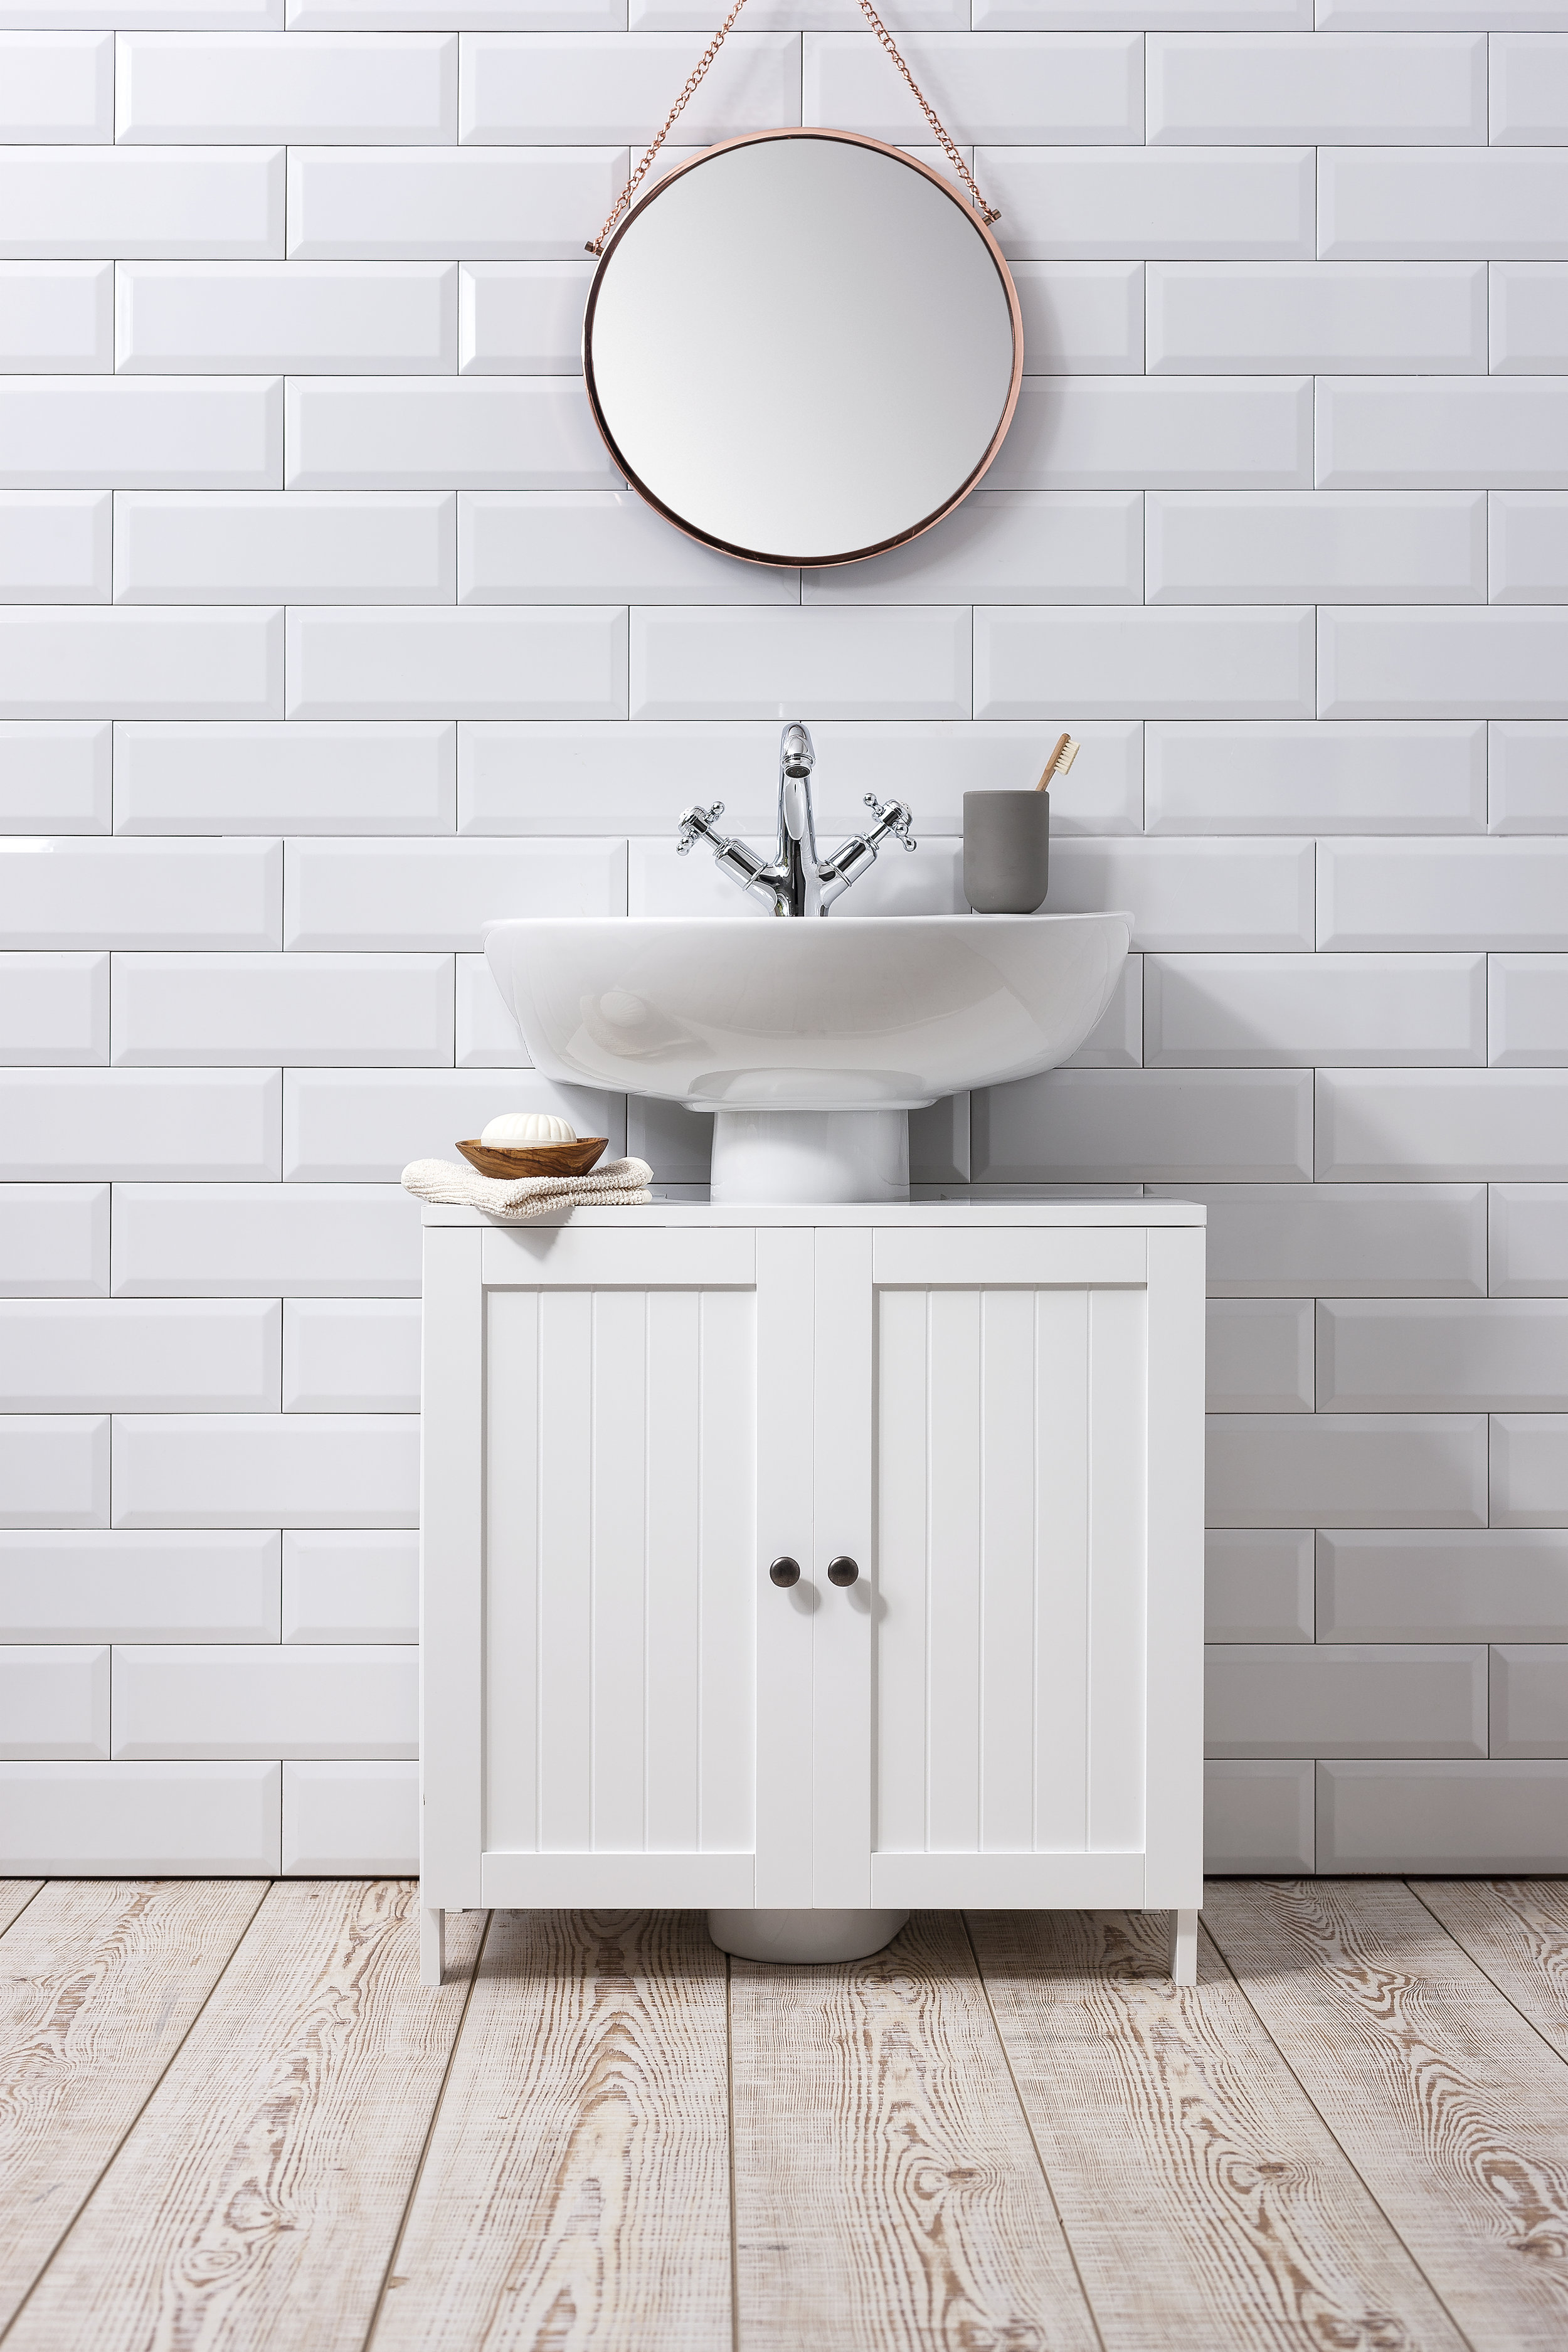 4. The ultimate bargain bathroom essential! - This simple but contemporary cabinet from Noa and Nani is an absolute steal at £39.